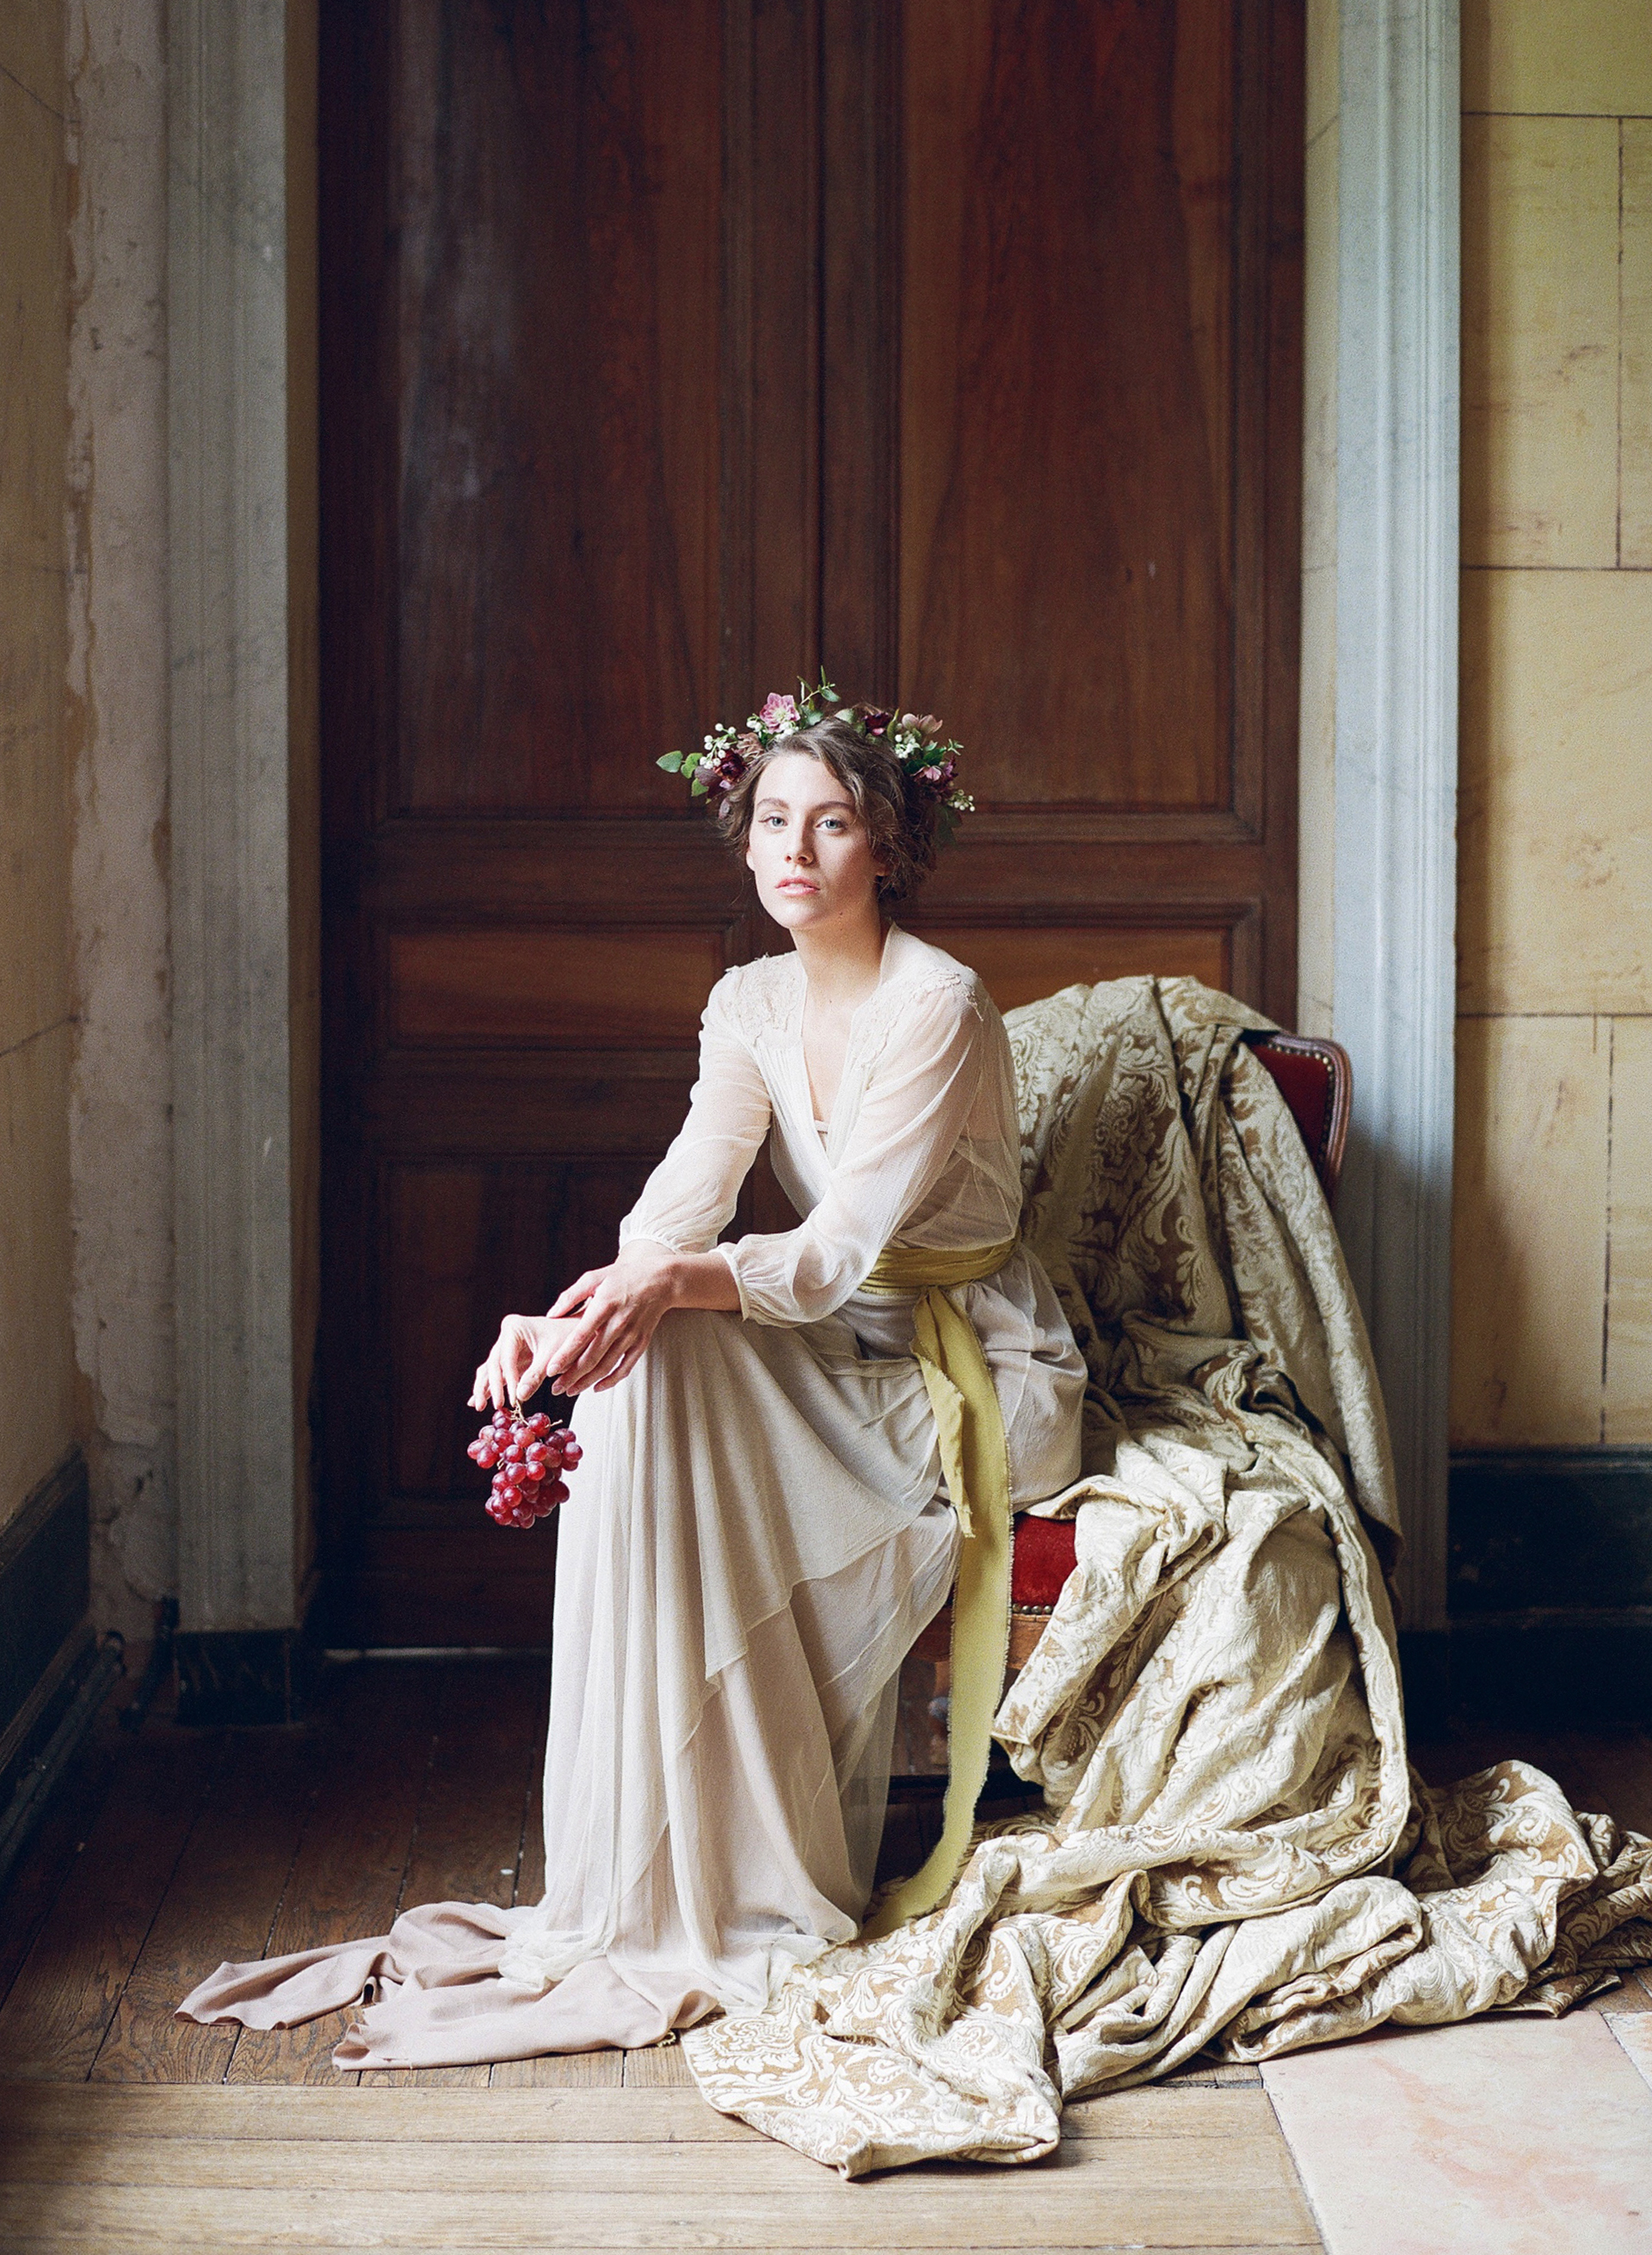 A dreamy Renaissance bride at Chateau de Varennes in Burgundy, France; Sylvie Gil Photography